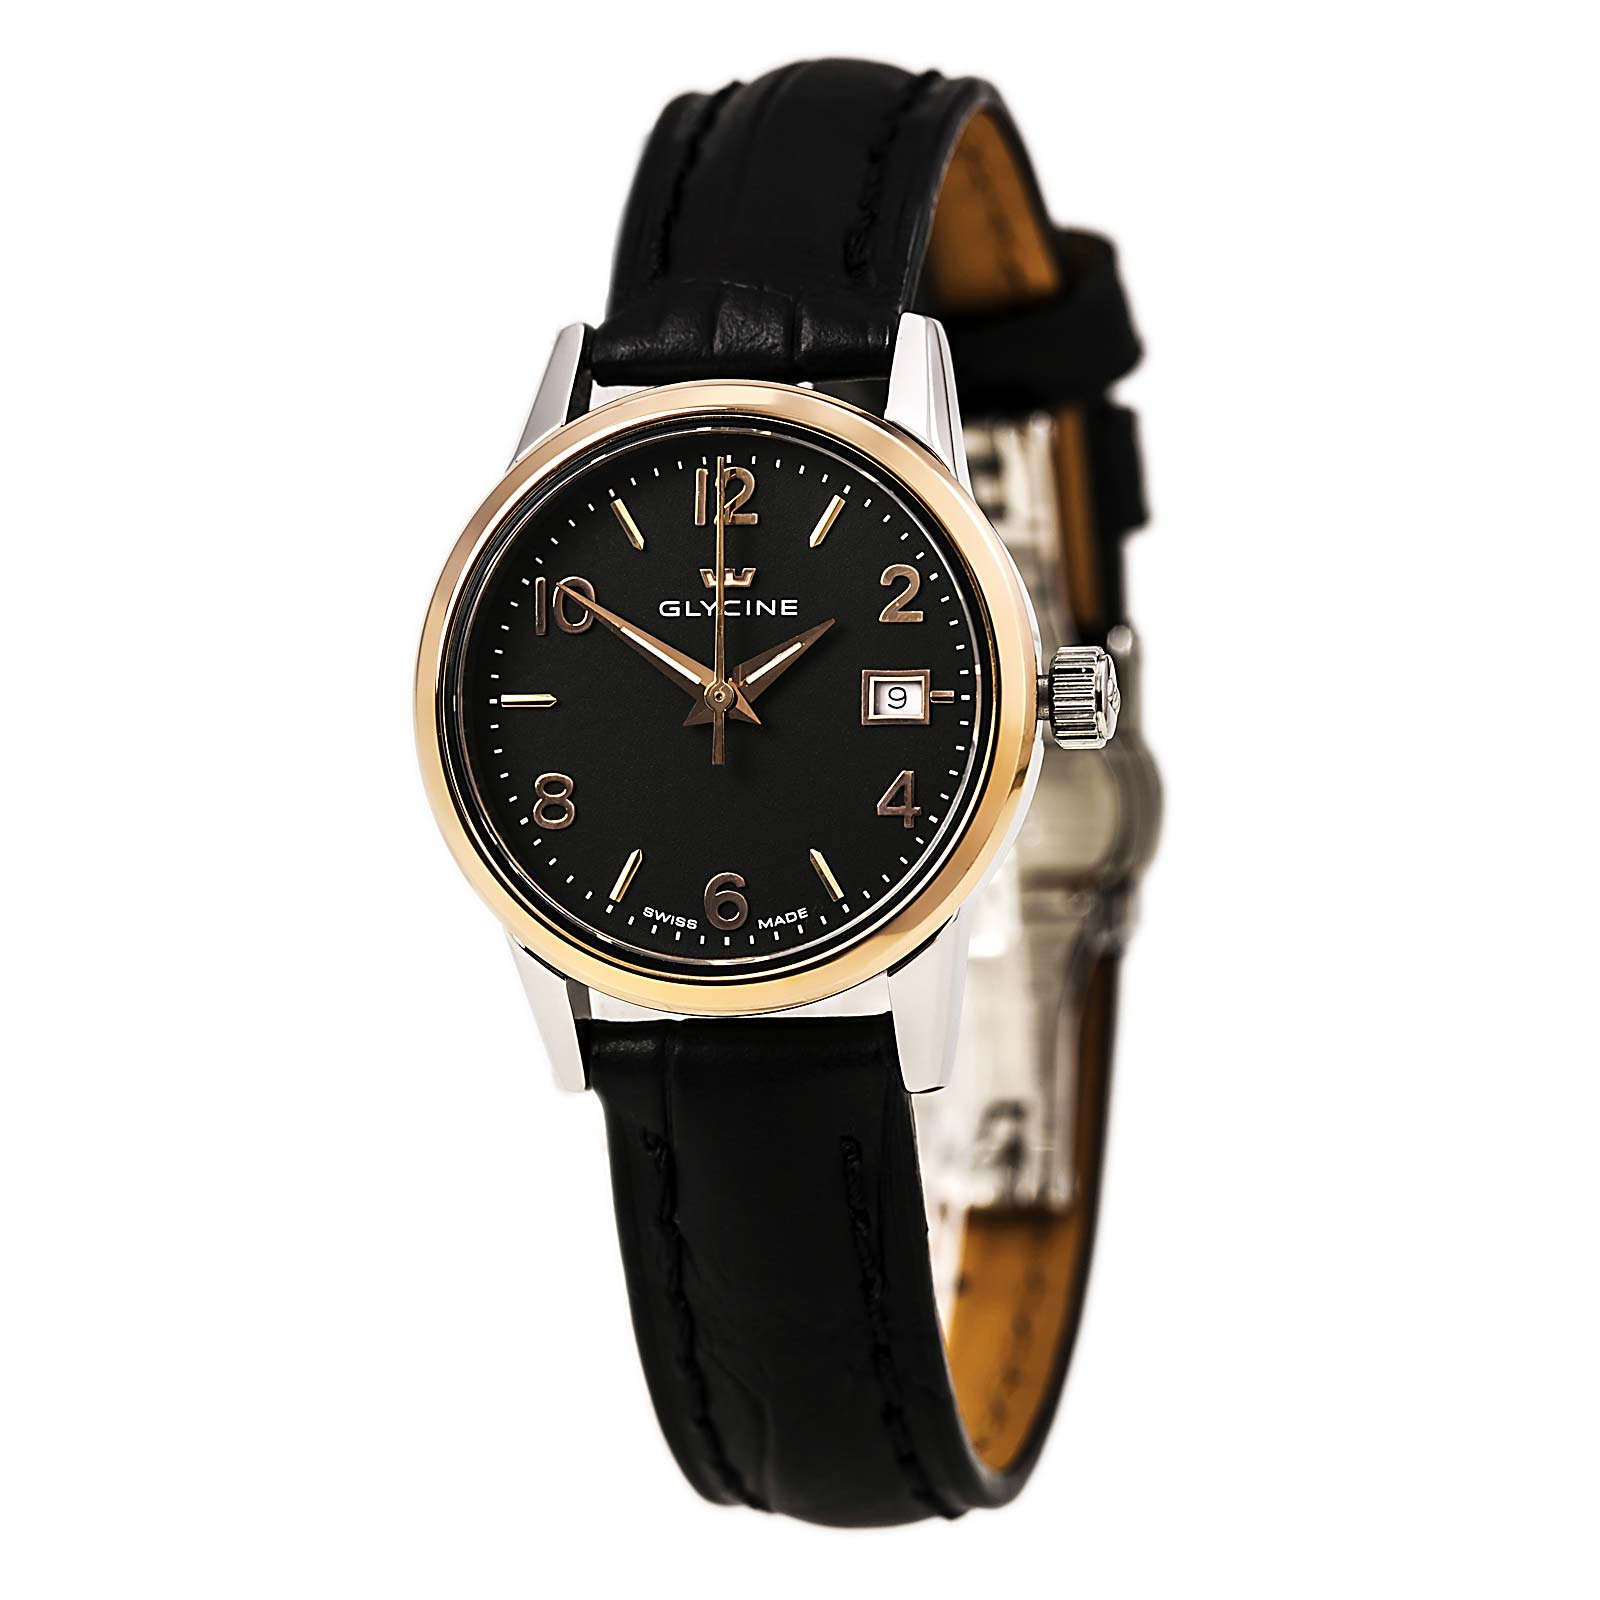 Glycine 3909-39 Women's Classic Black Dial Black Leather Strap Date Watch